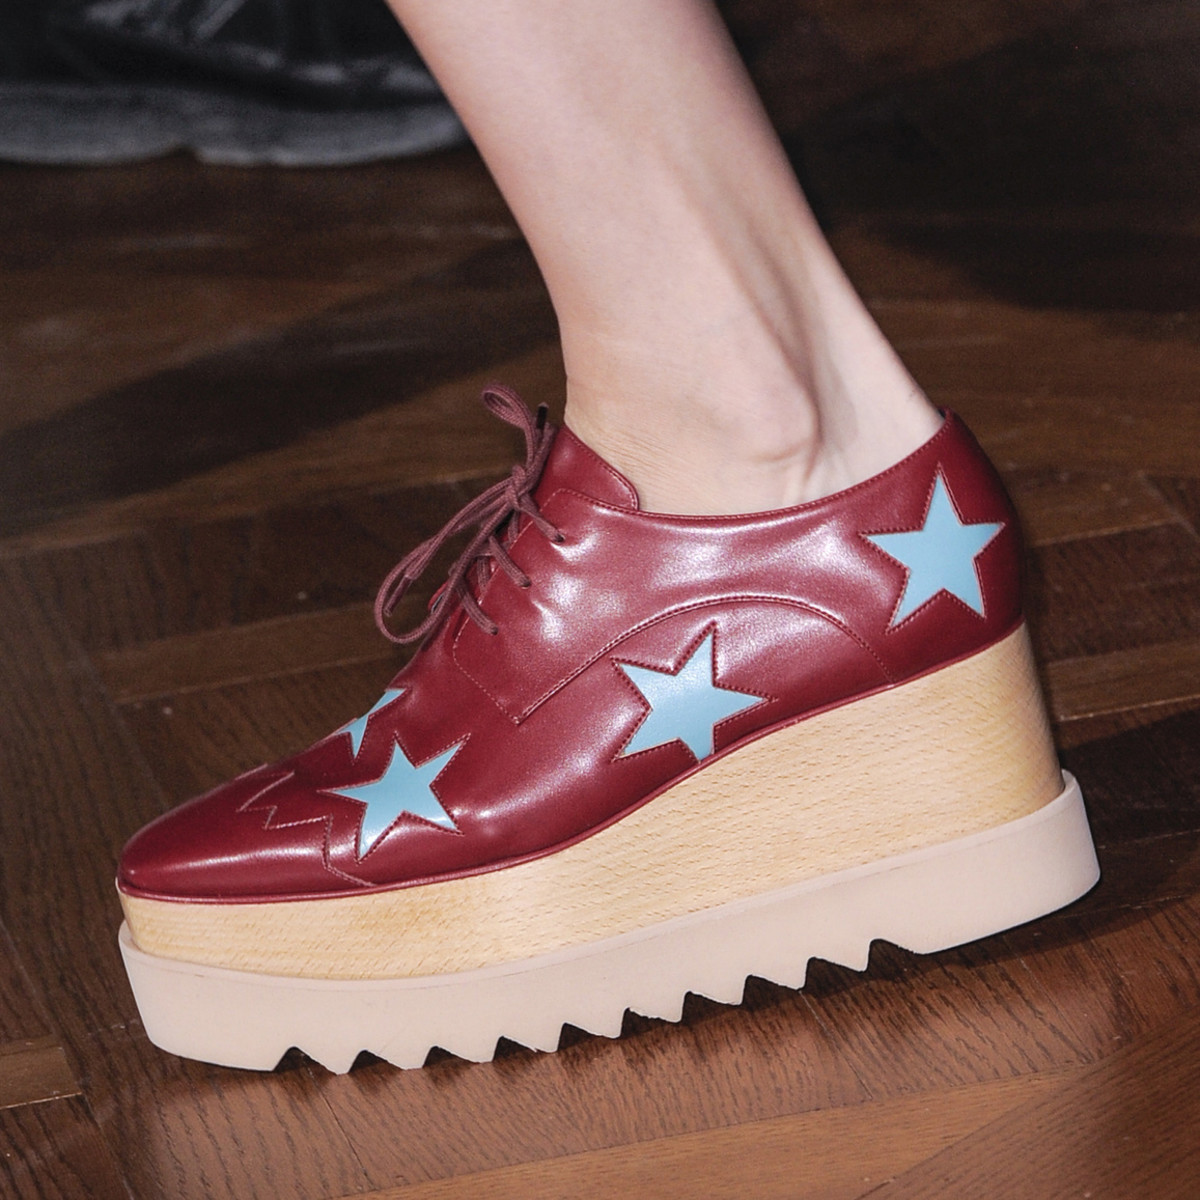 Stella McCartney flatforms from the fall 2014 show. Photo: Imaxtree.